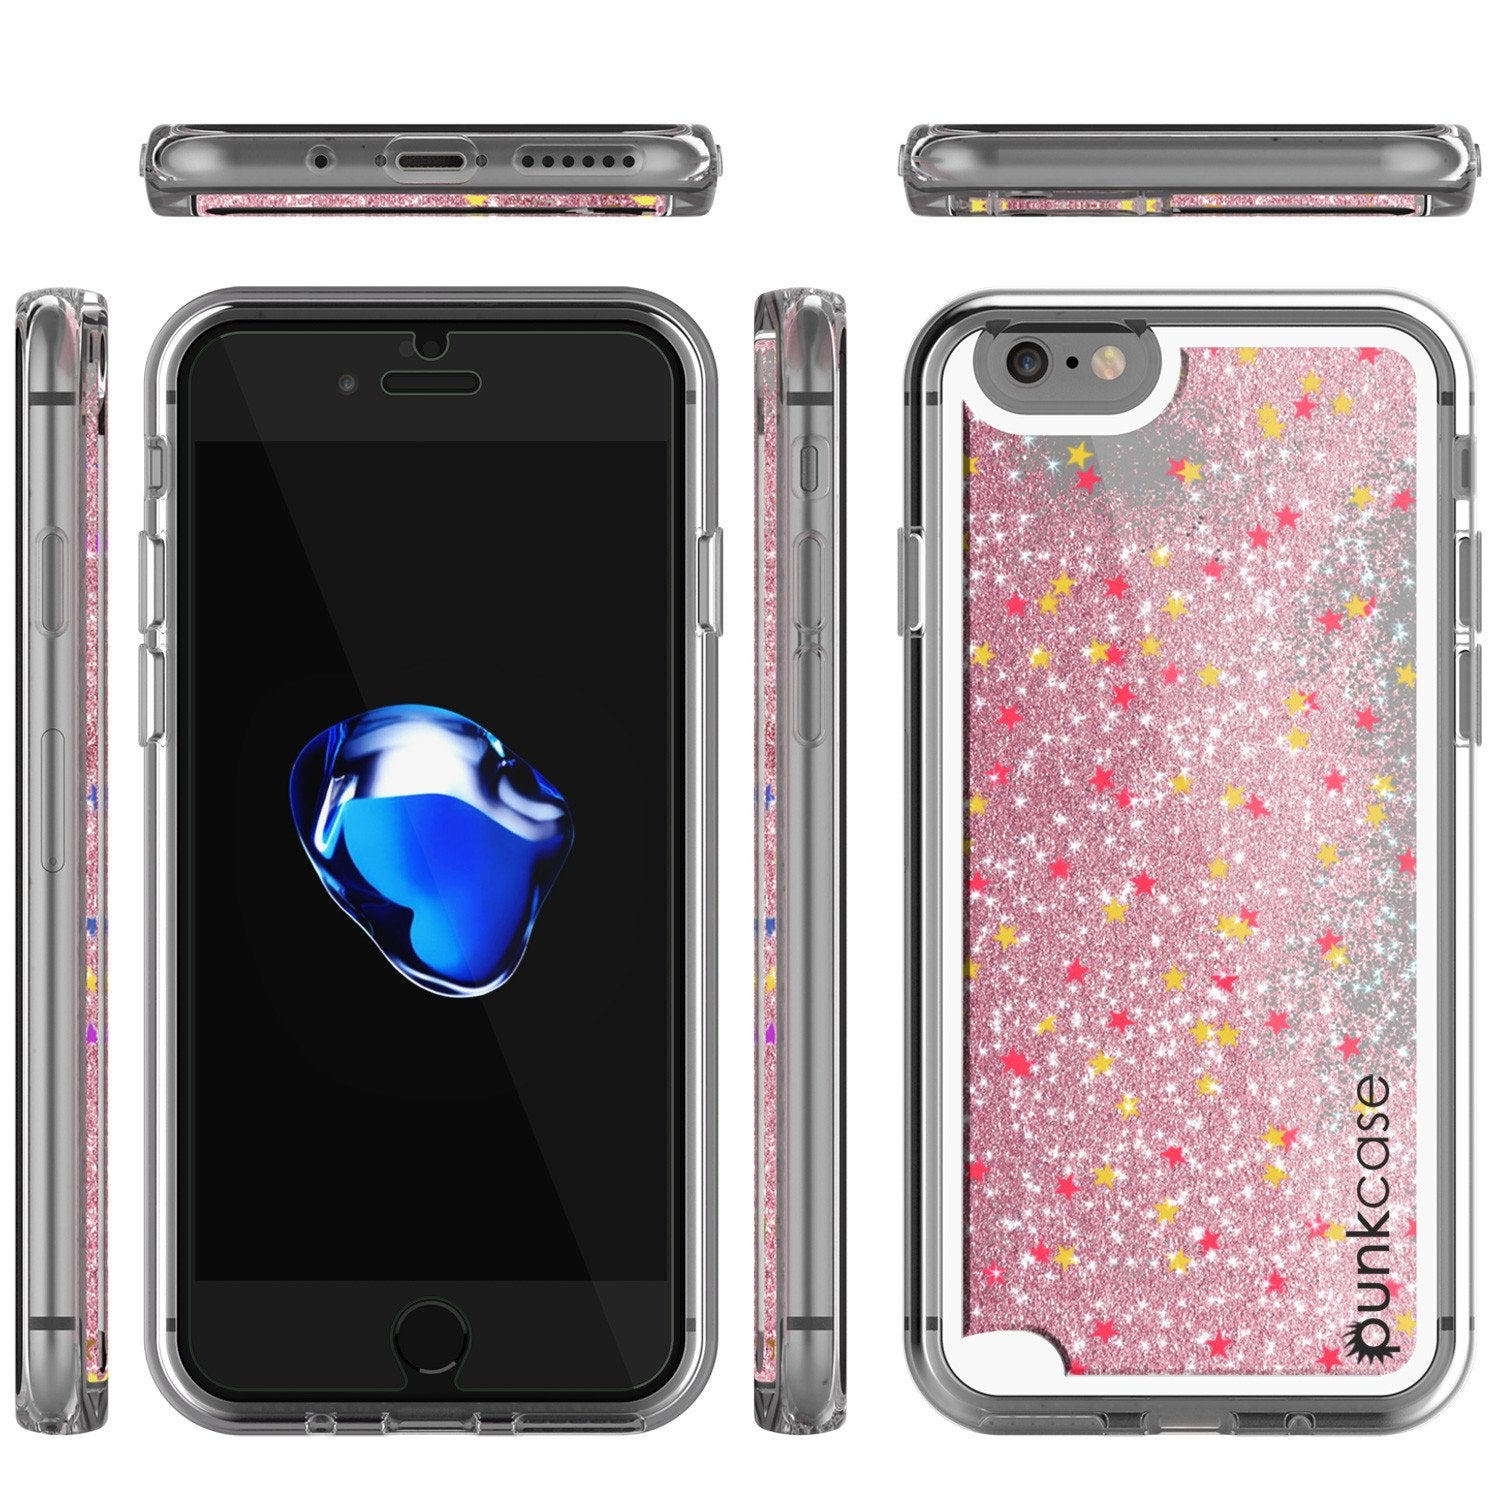 iPhone 7 Case, PunkCase LIQUID Rose Series, Protective Dual Layer Floating Glitter Cover